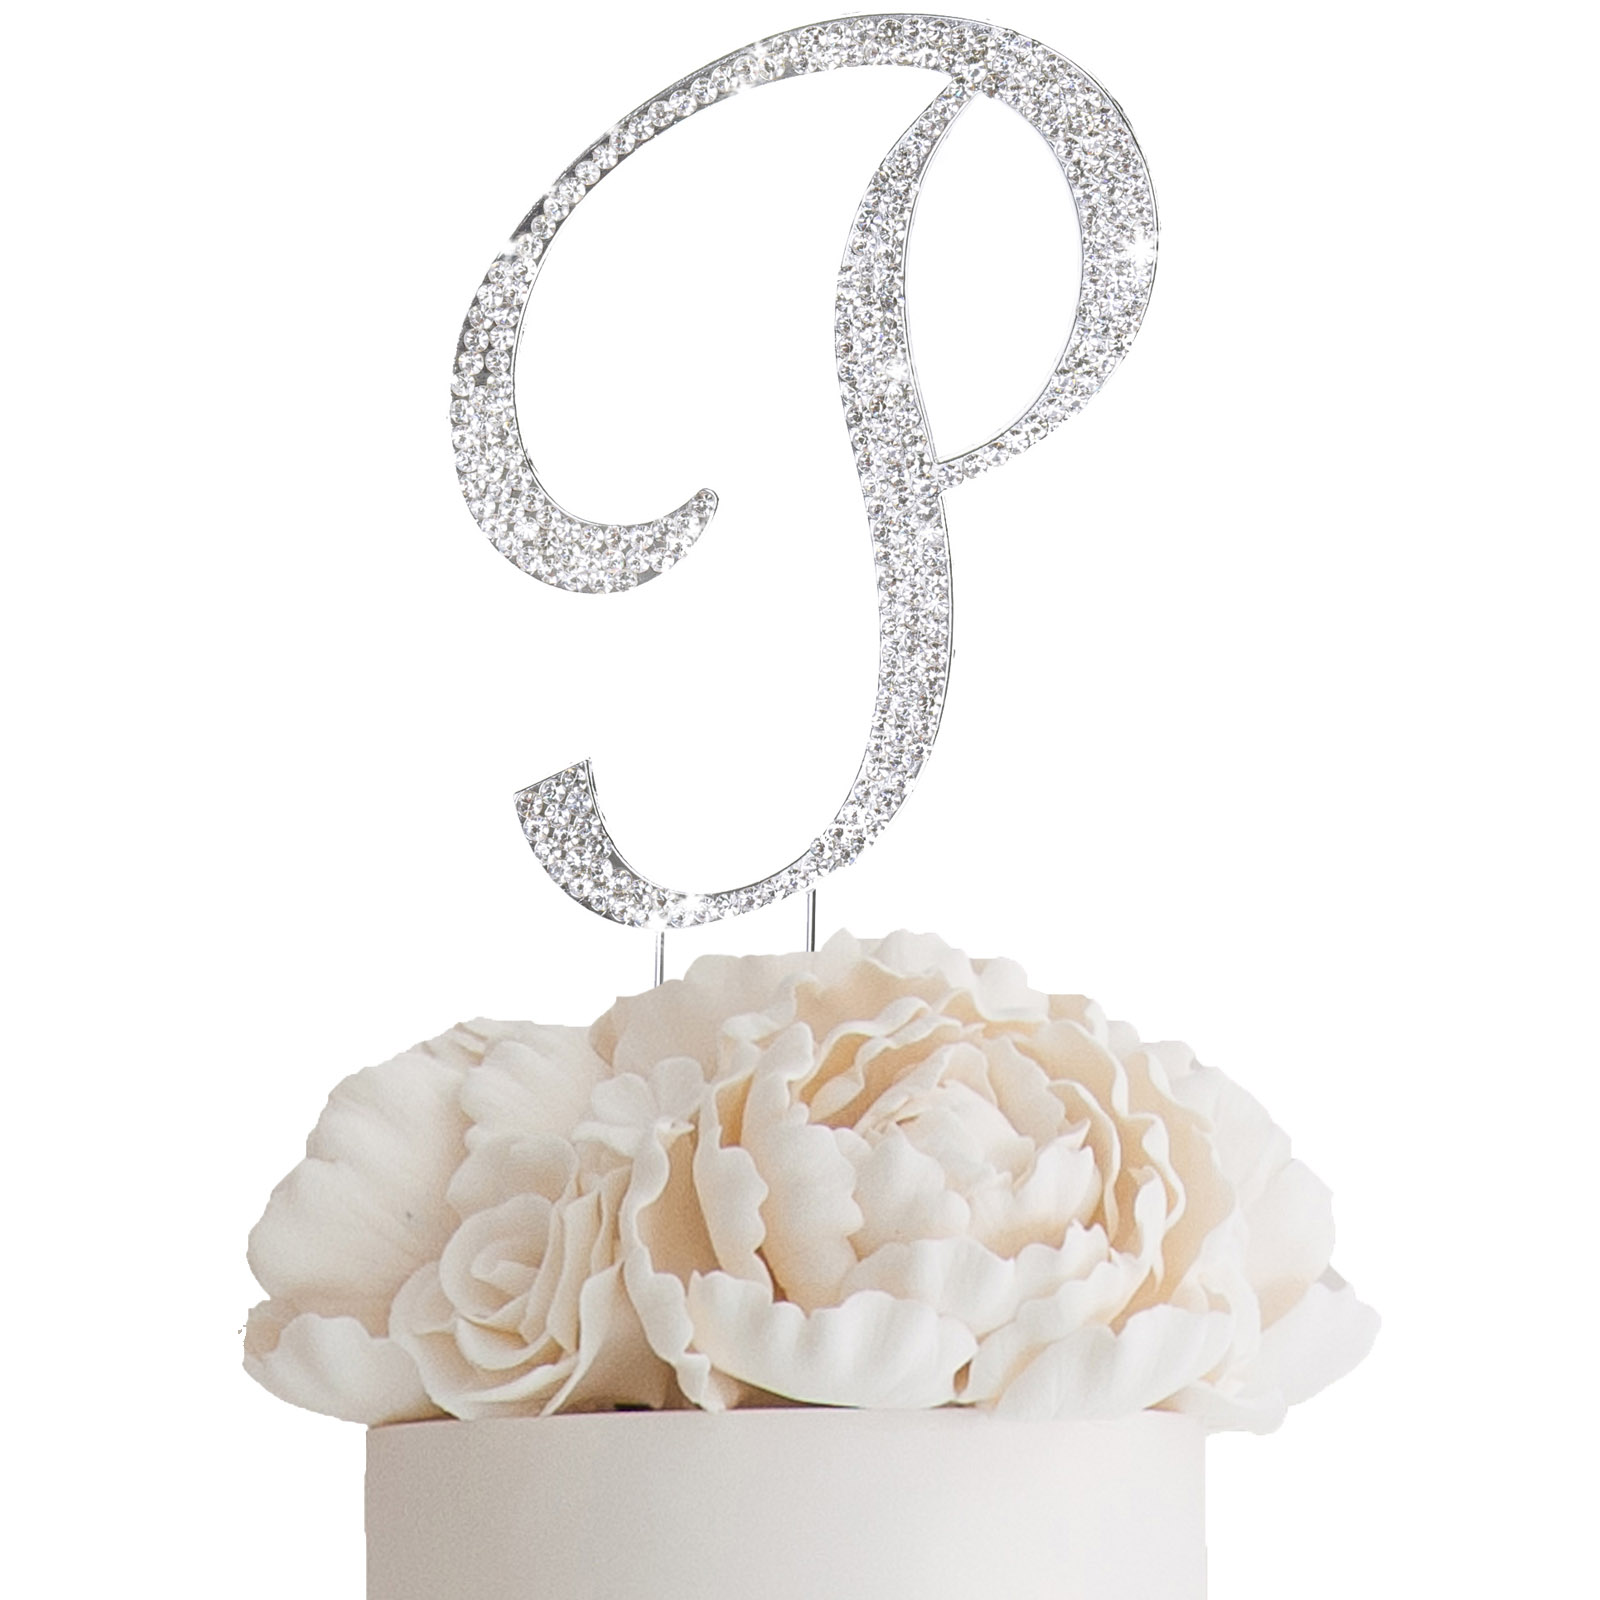 """4 5"""" tall Rhinestone Cake Topper Party Wedding Decorations"""